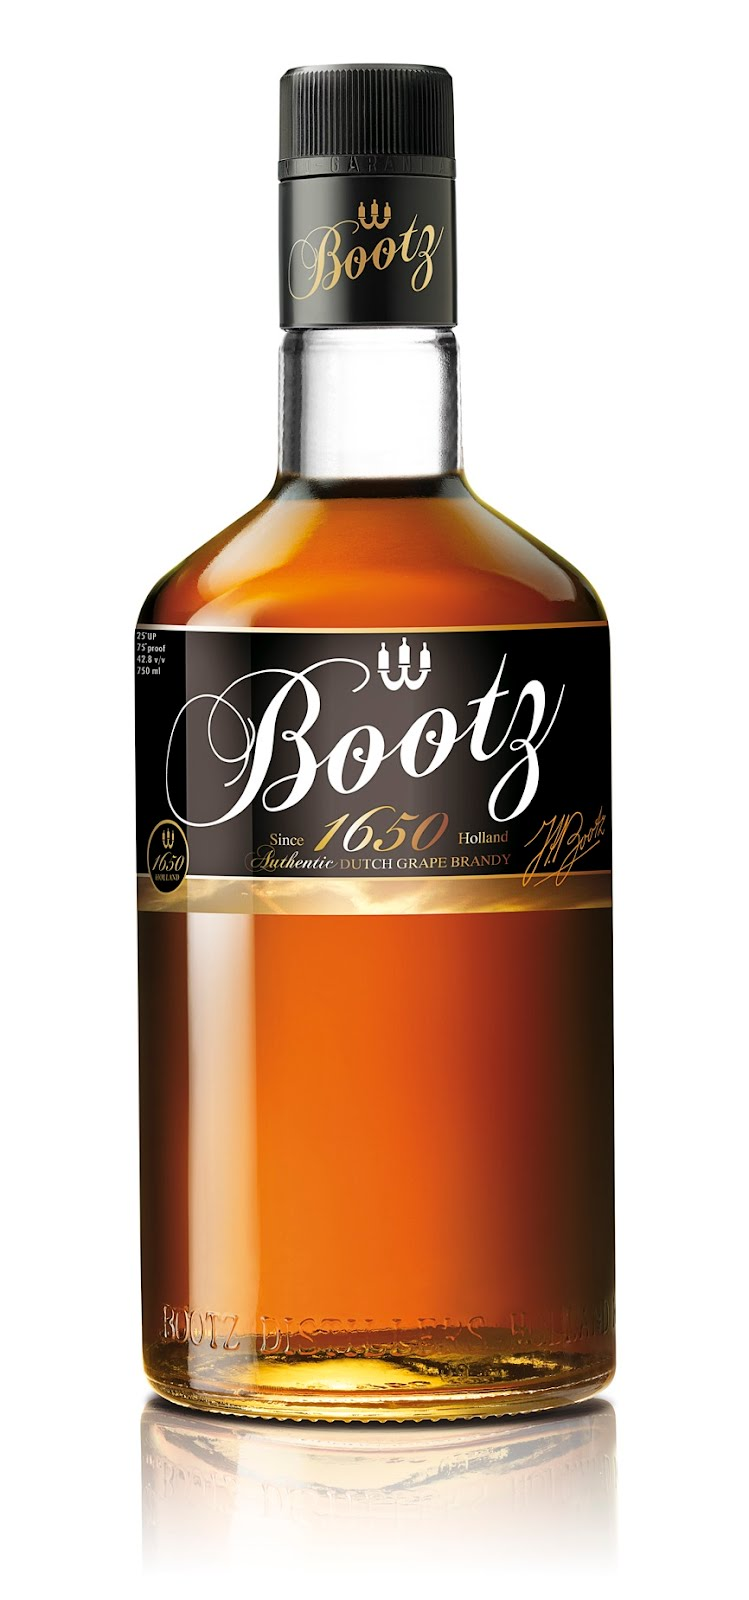 alcobev in india Som group of companies is an integrated alcobev player based out of central india the group is into production of beer, whisky, vodka, rum, gin, ready to drink beverages and country liquor.